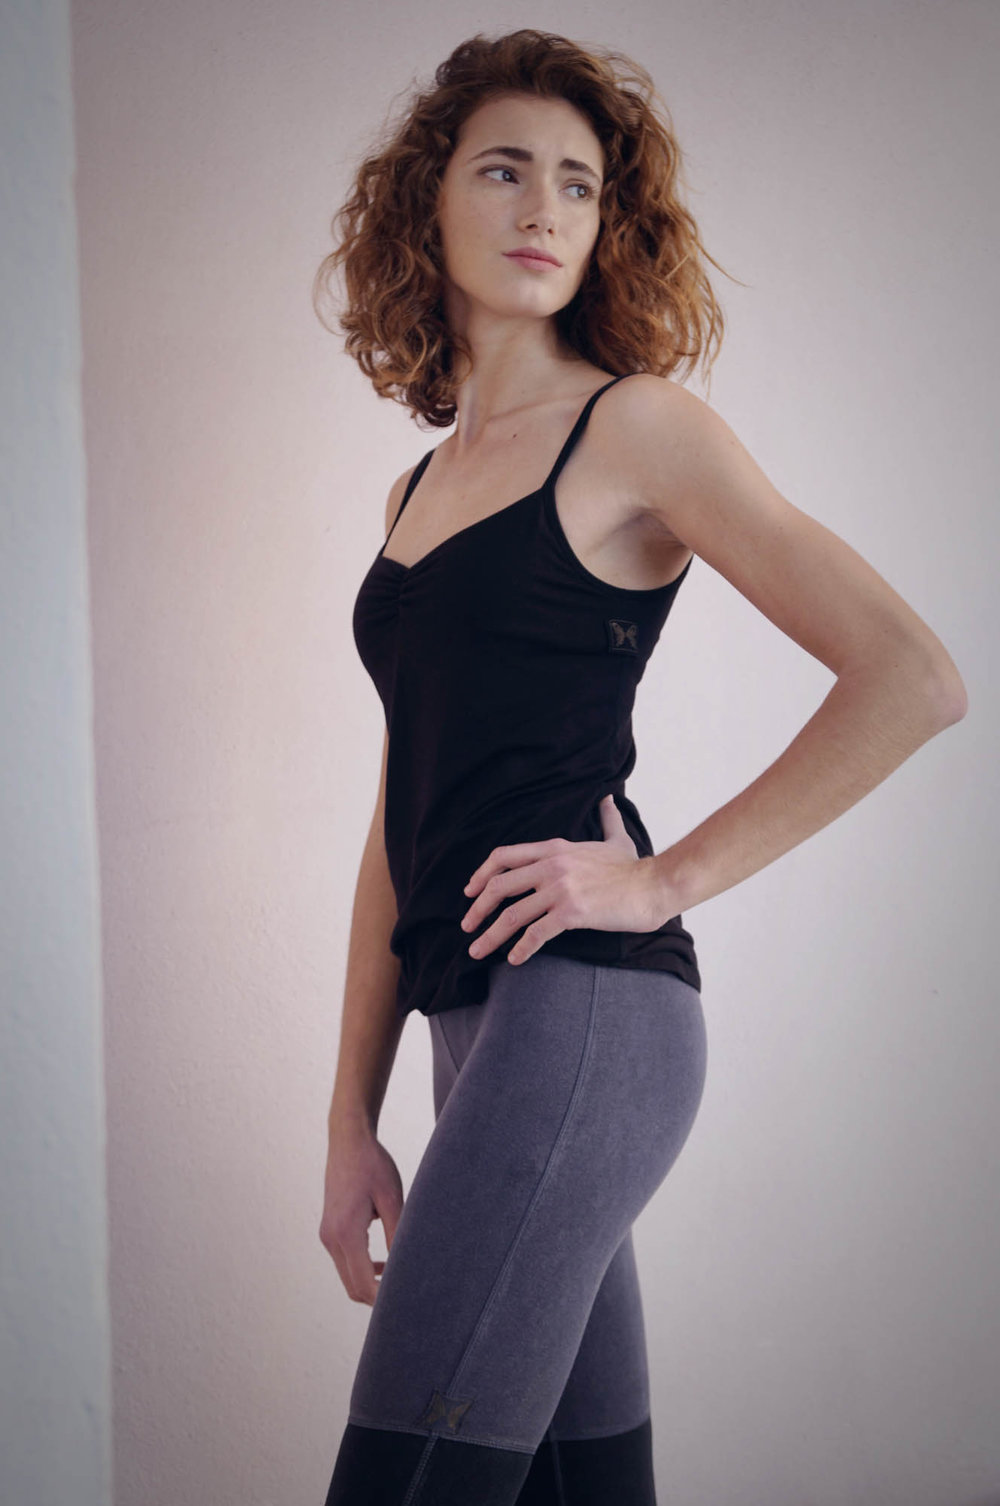 Maria Malo active wear organic clothing in black